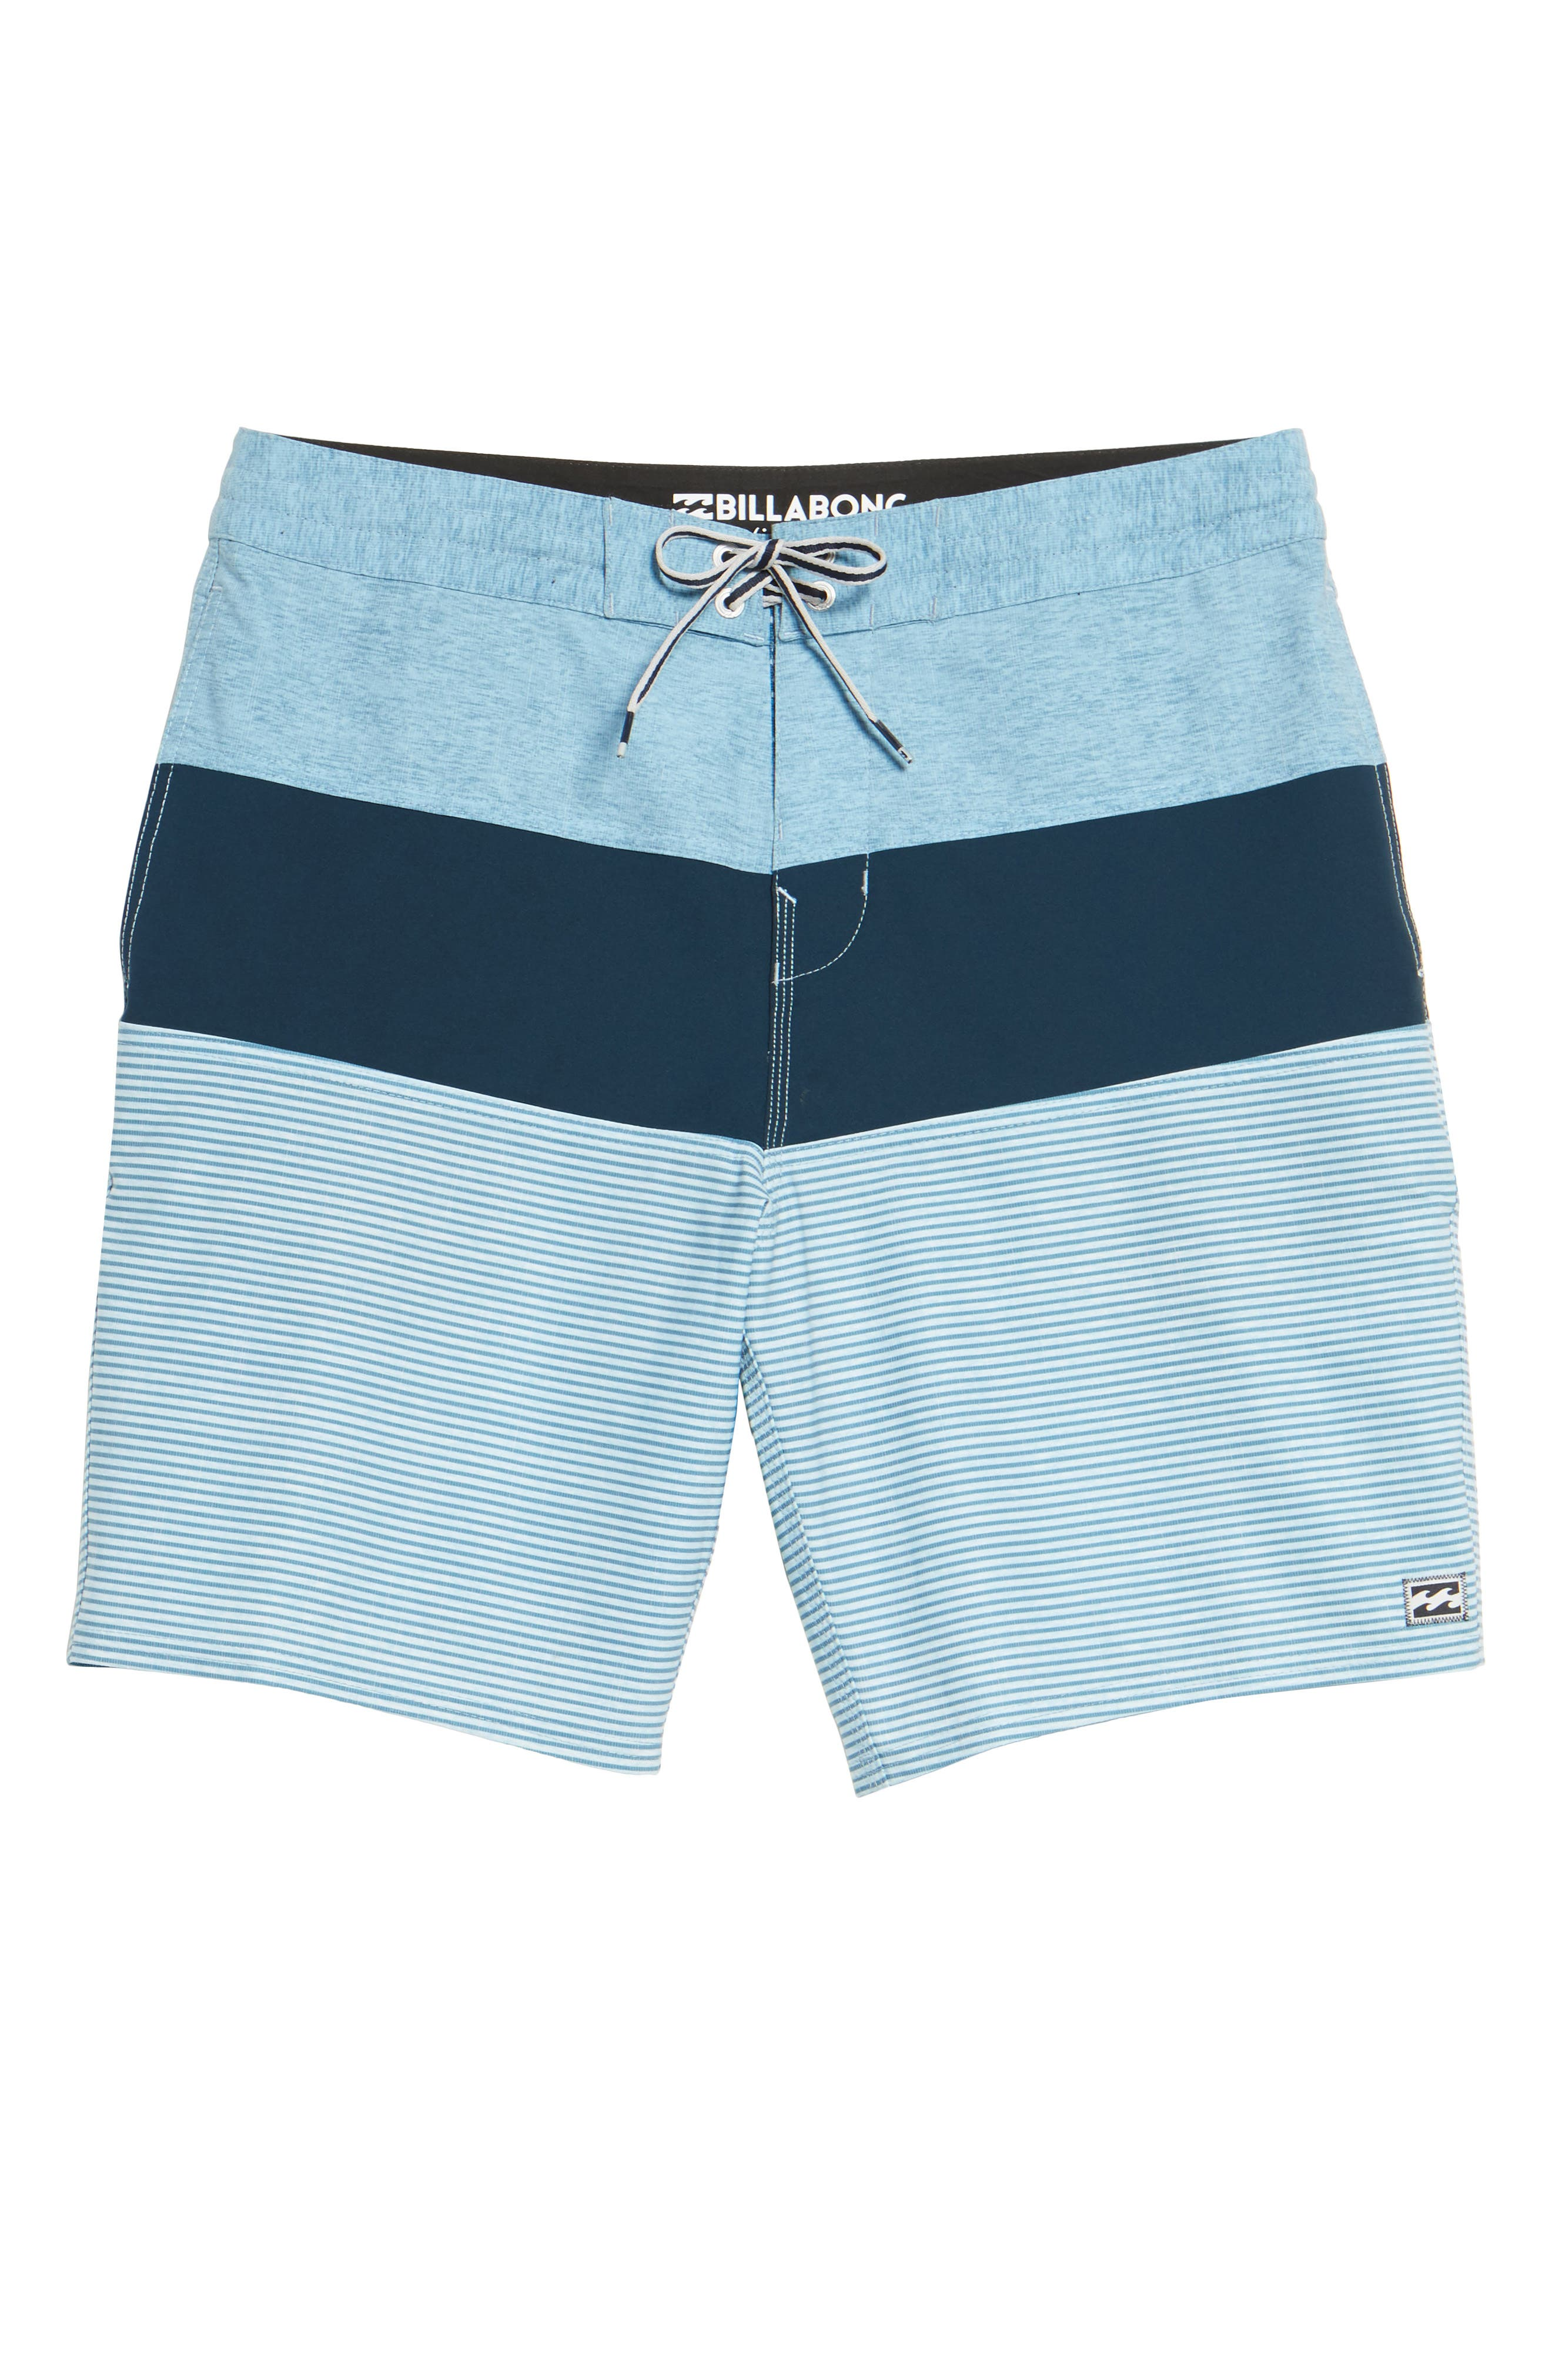 Tribong LT Board Shorts,                             Alternate thumbnail 17, color,